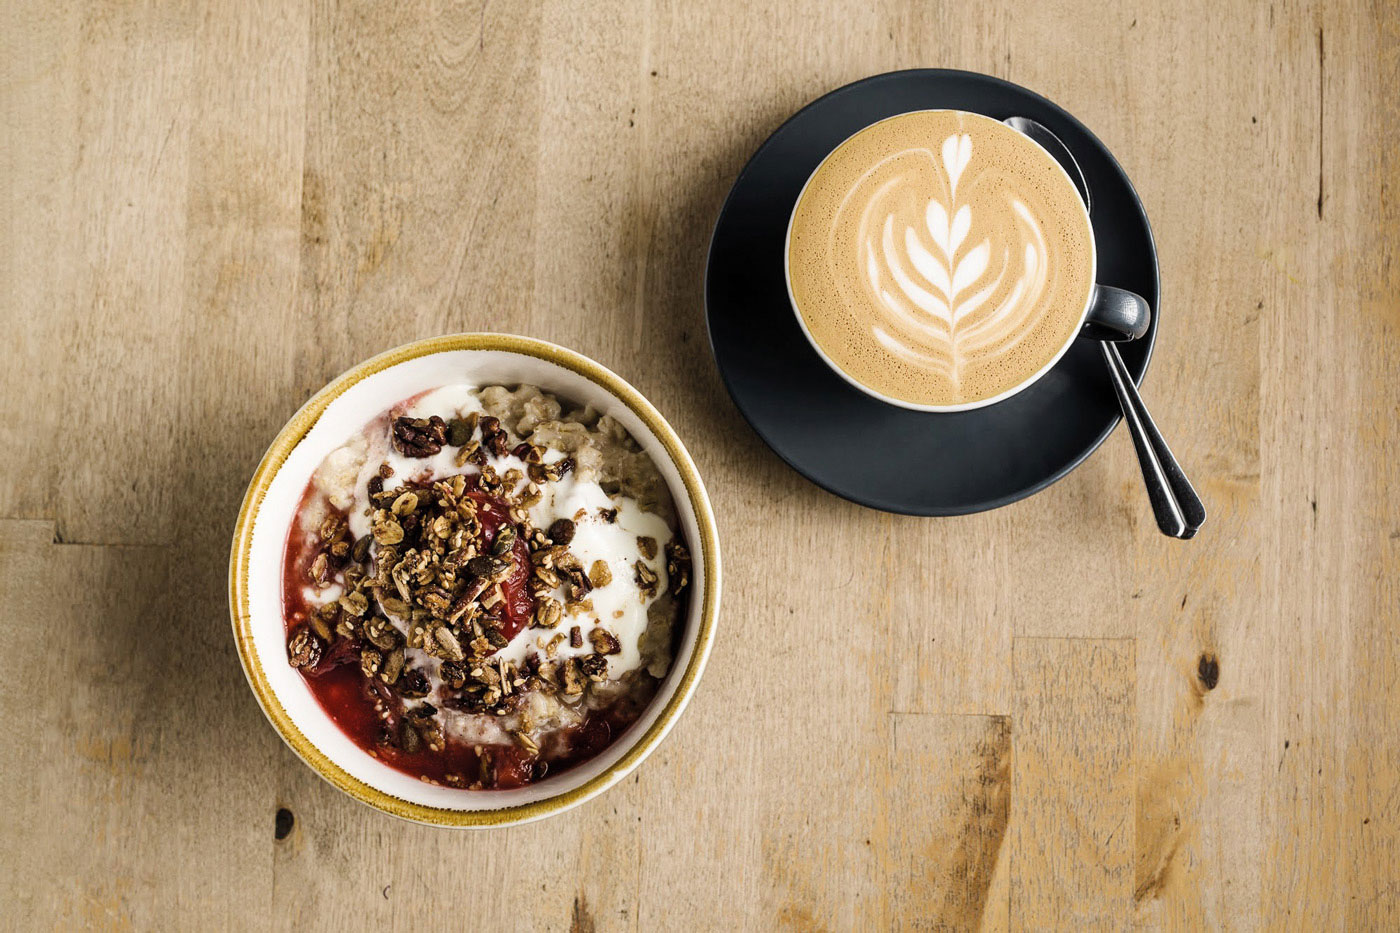 Flat white and granola topped yogurt